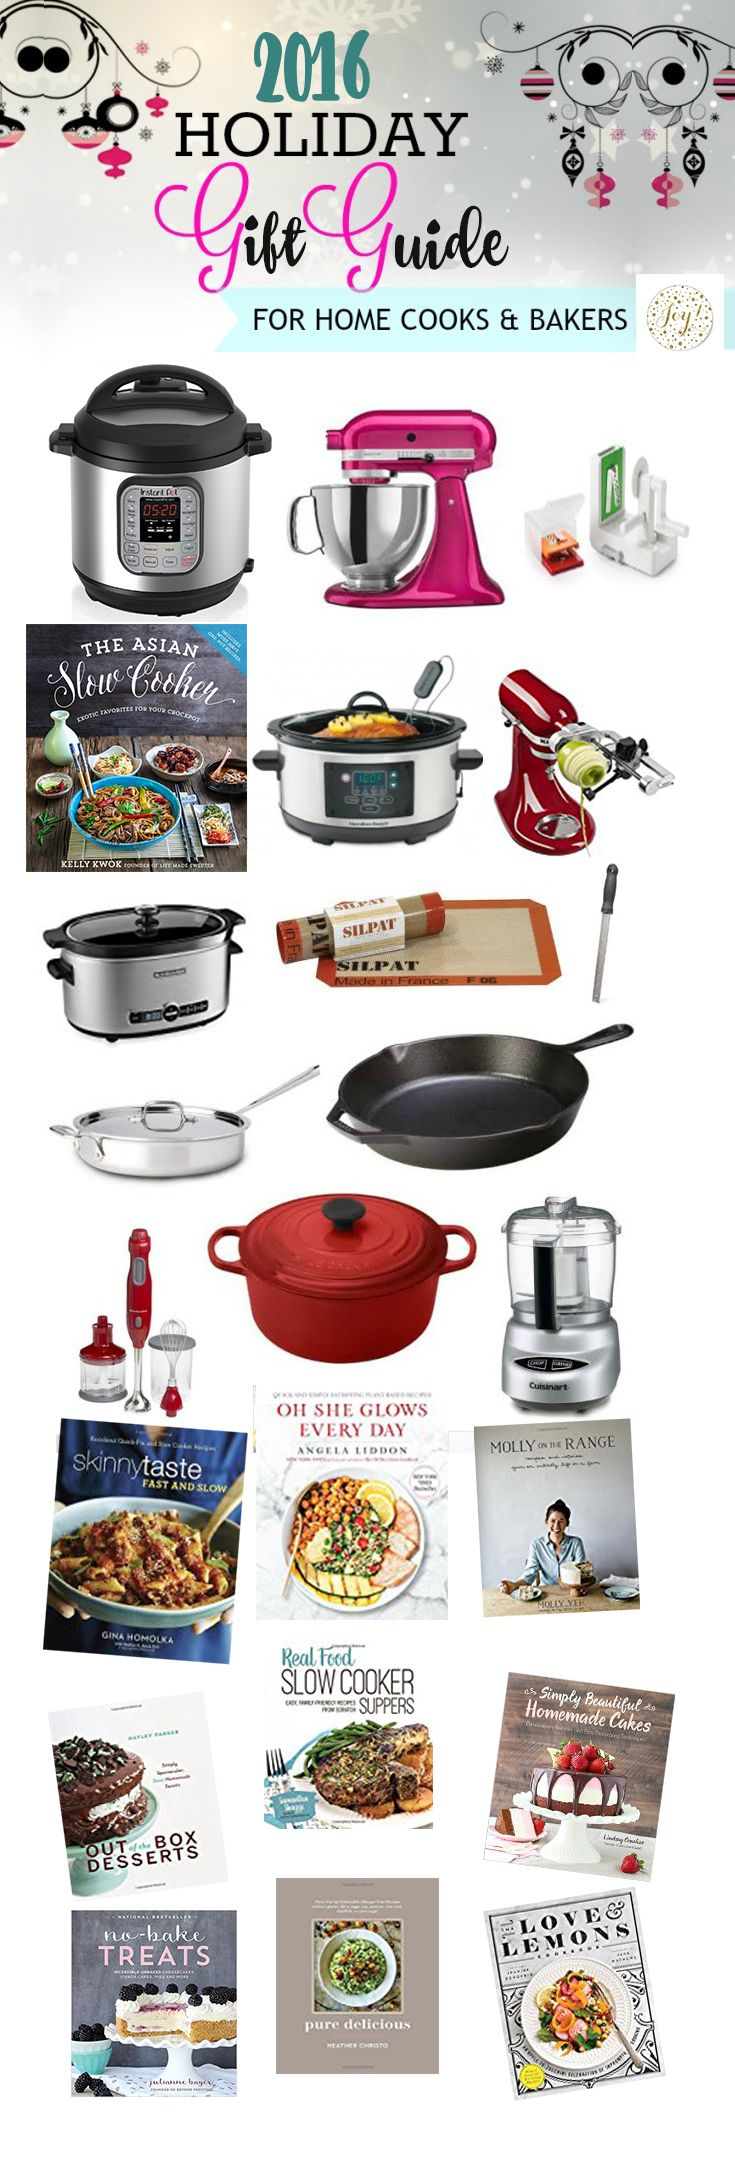 2016 Holiday Gift Guide - just perfect for the home baker and cooks. Best of all, there are new cookbooks and tons of options for big or small budgets including the Instant Pot, slow cookers, cookie scoops, graters and more!!